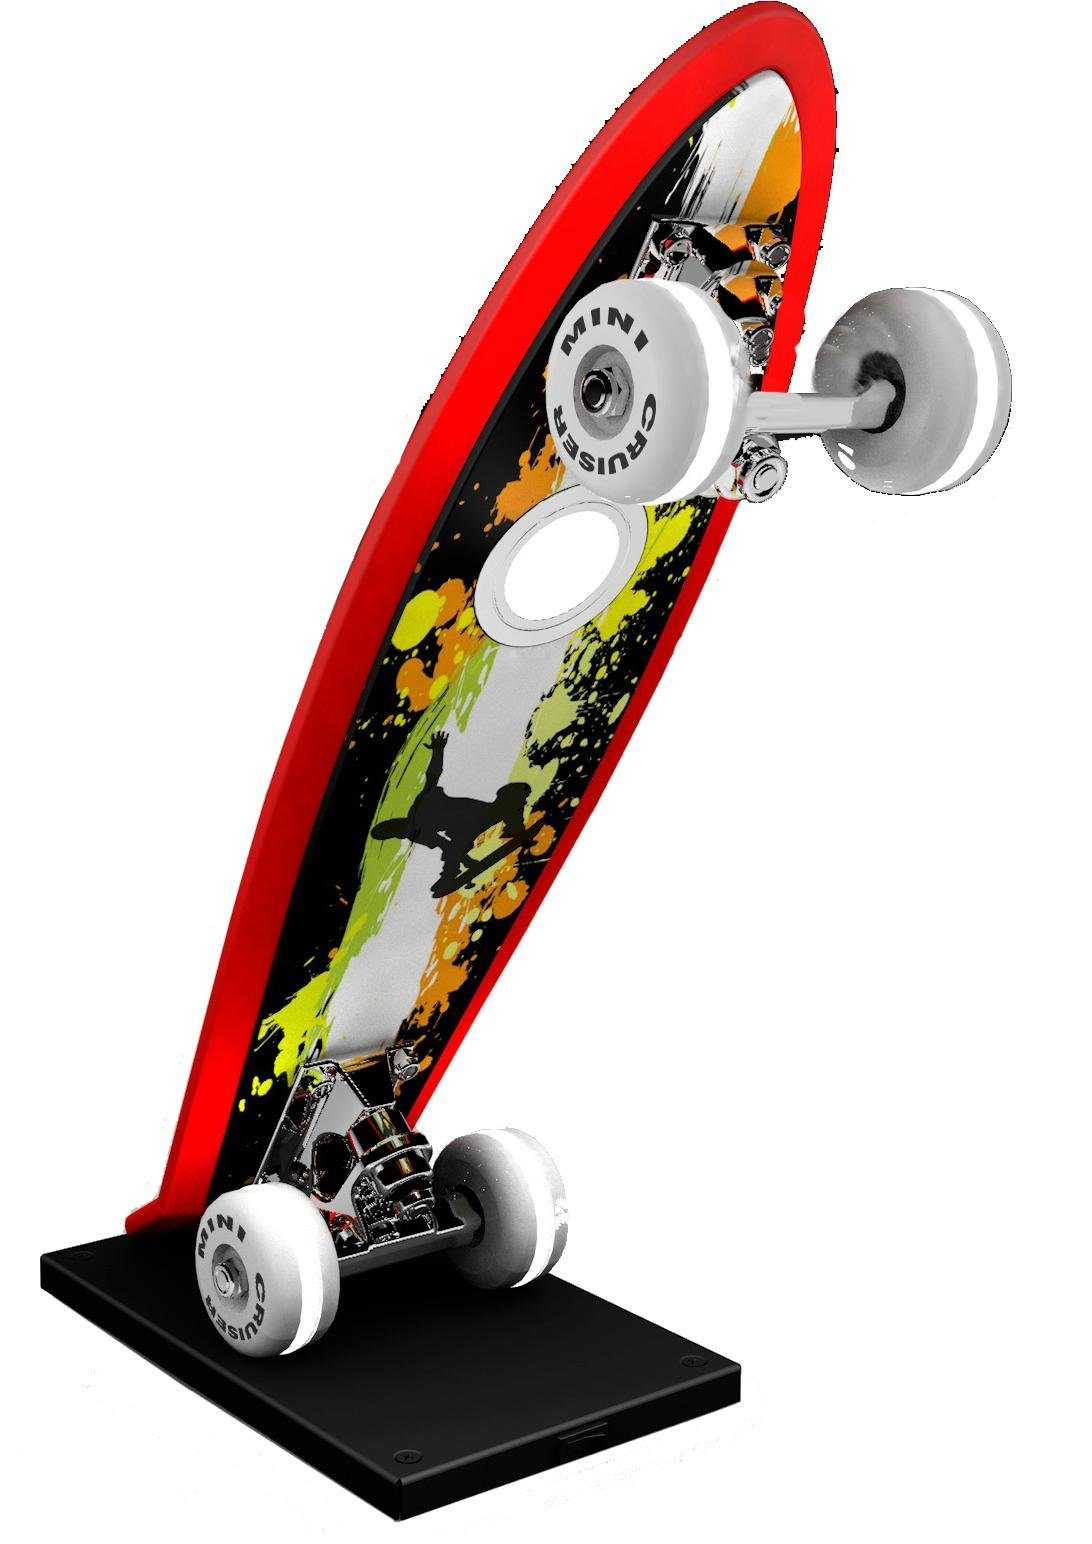 EVOTEC LED Tischleuchte »Skateboard MINI CRUISER«, 1-flammig